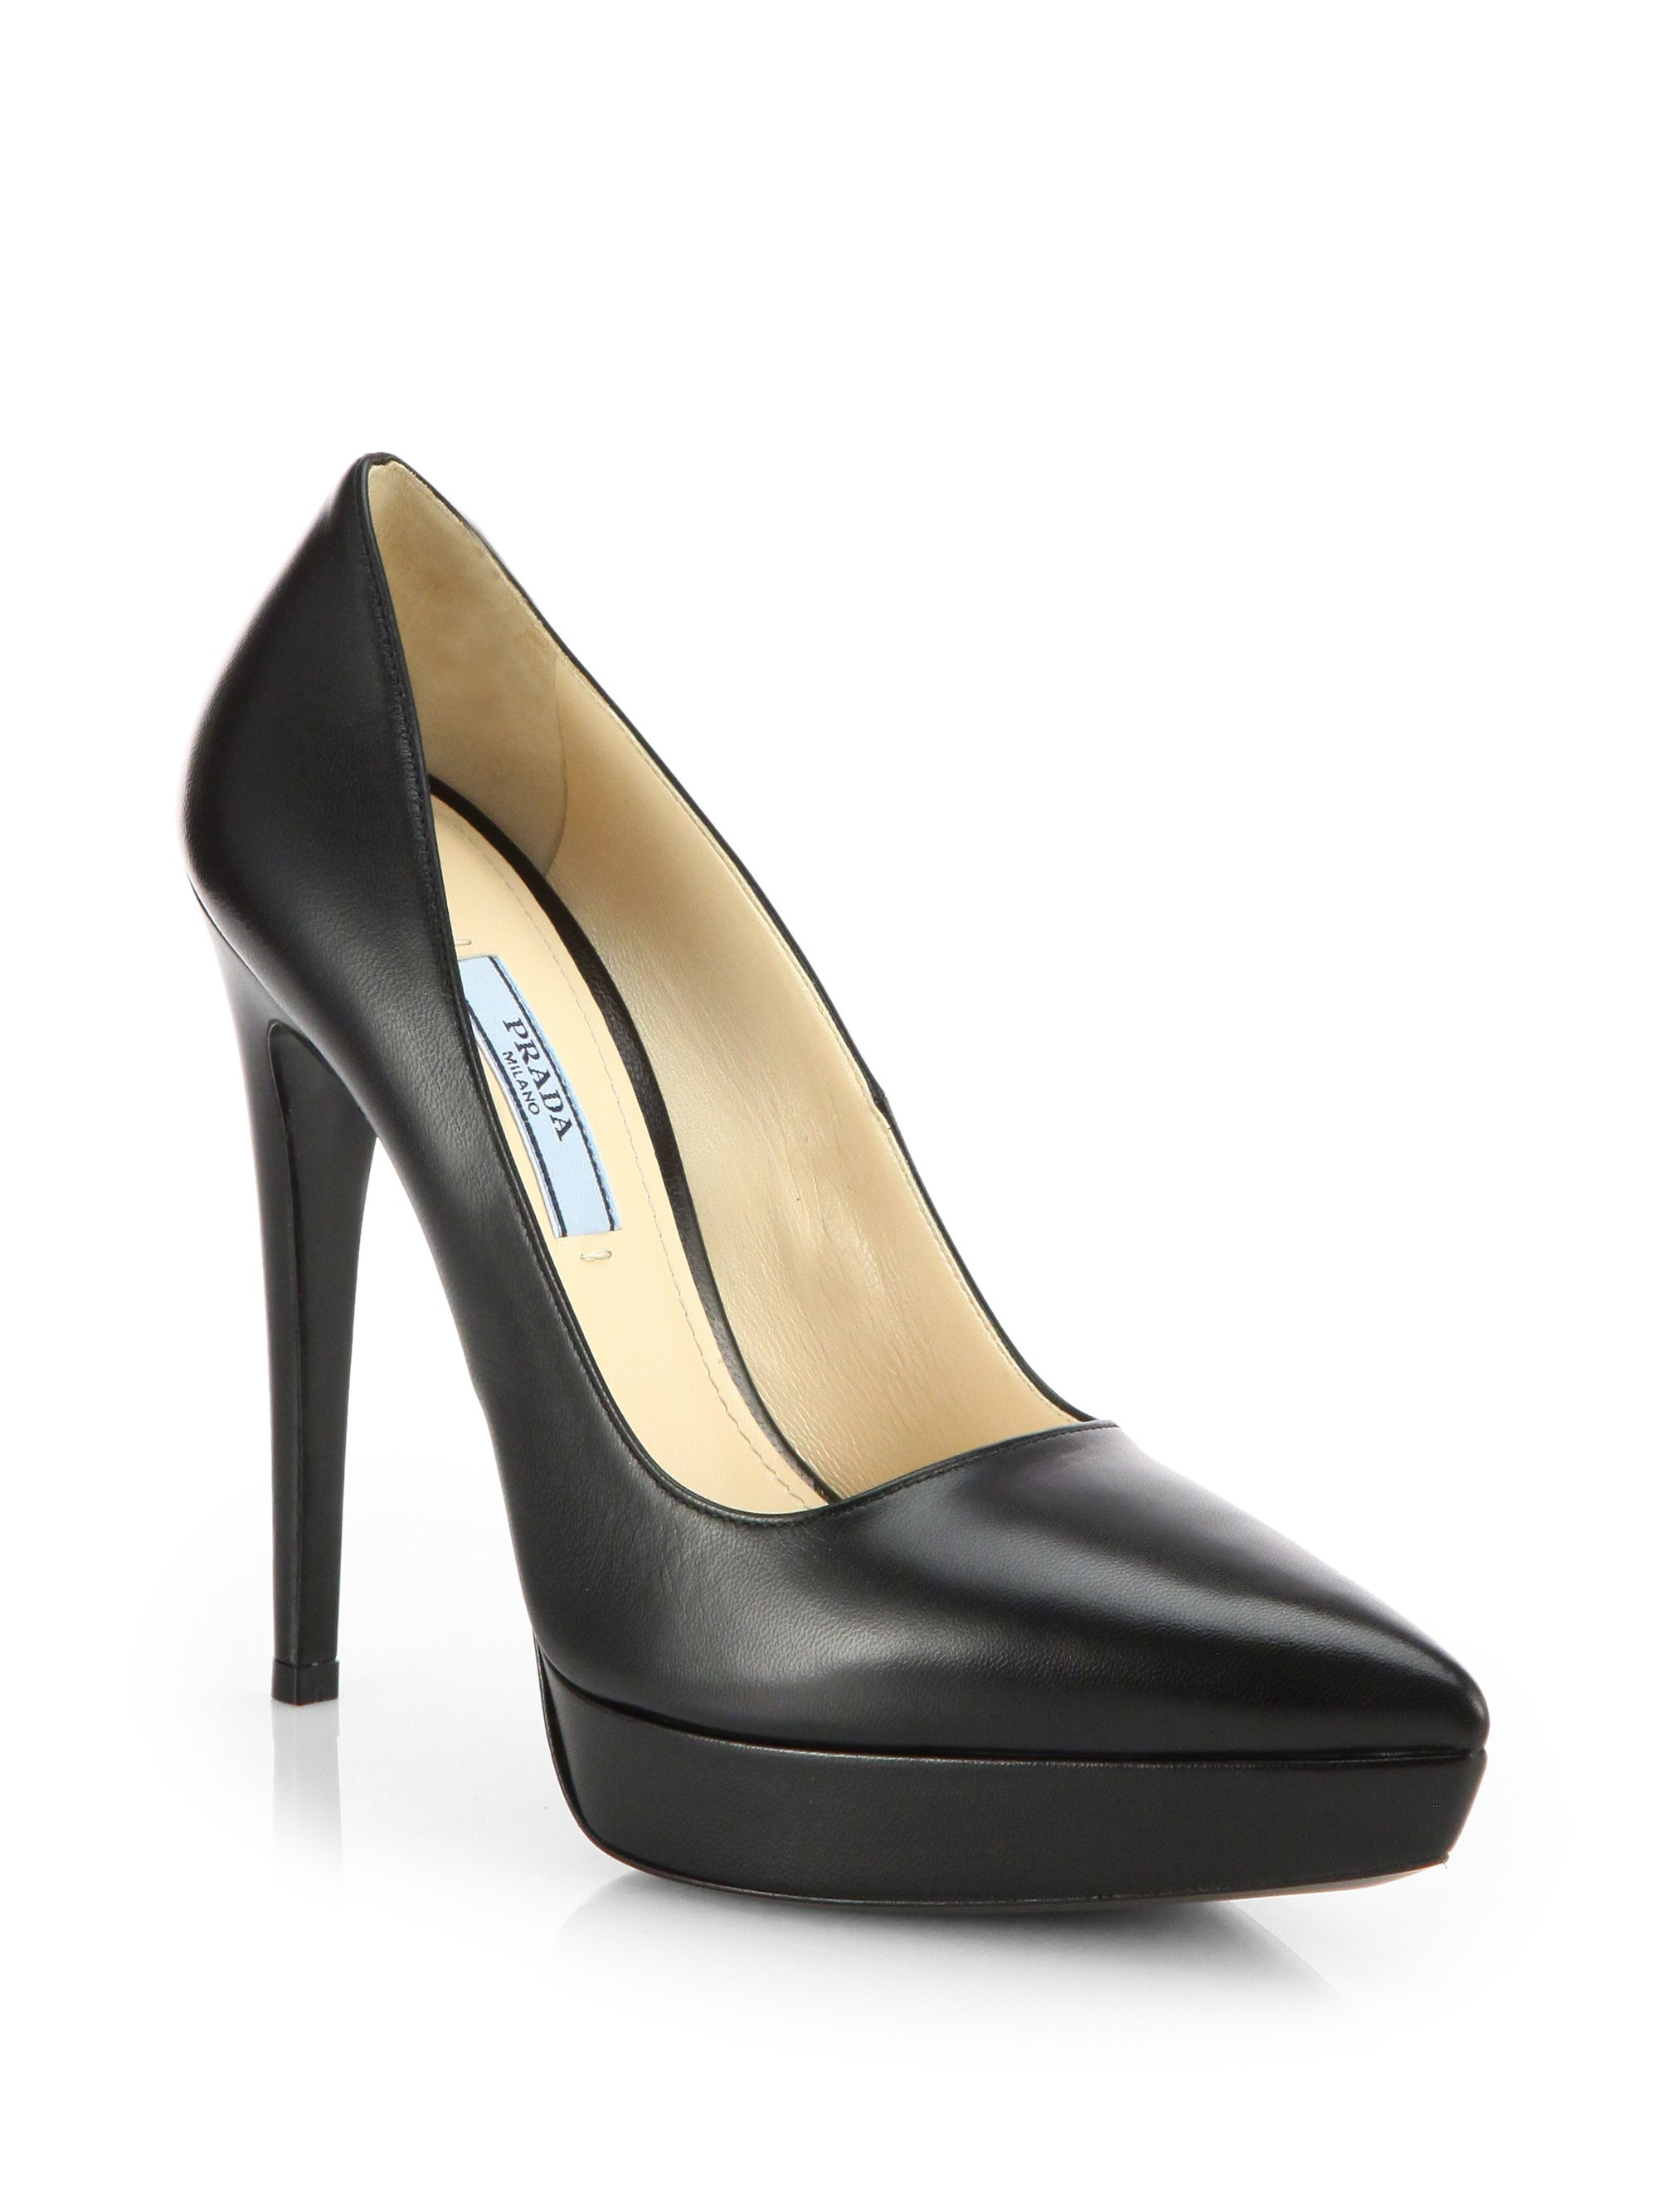 Prada Leather plateau pumps Explore Sale Browse dc5N3SrPg